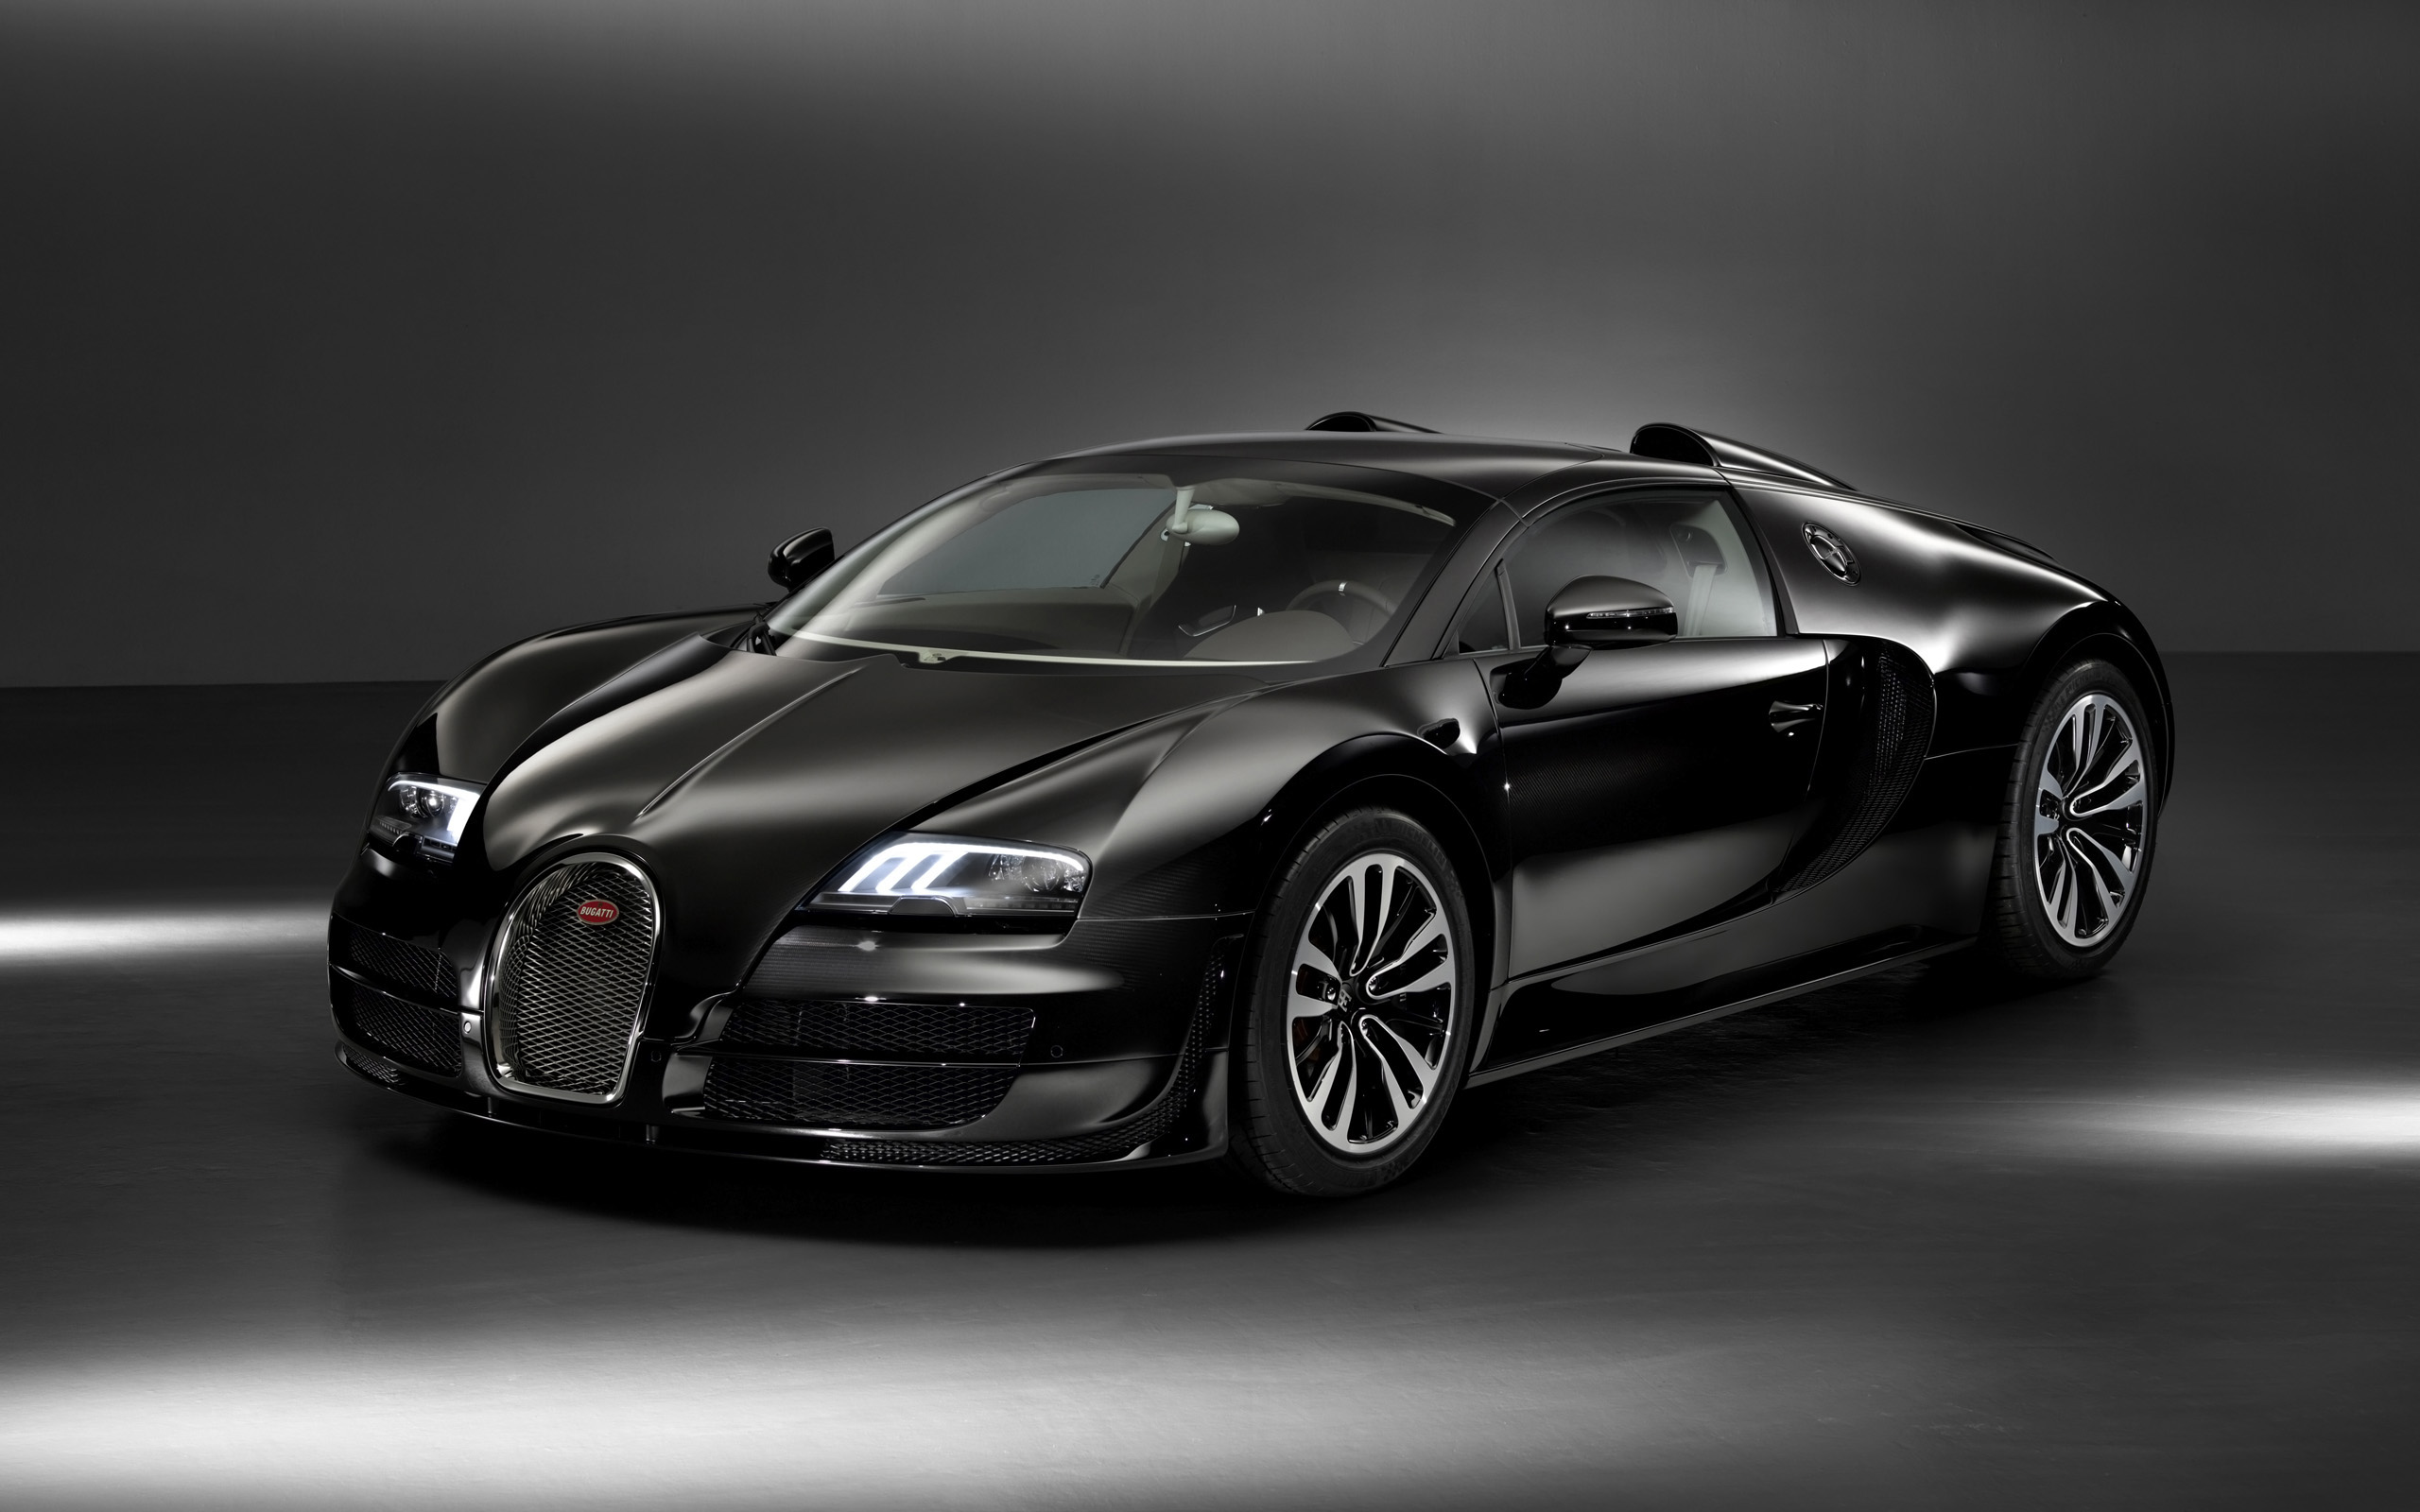 Bugatti Veyron Wallpaper Costom